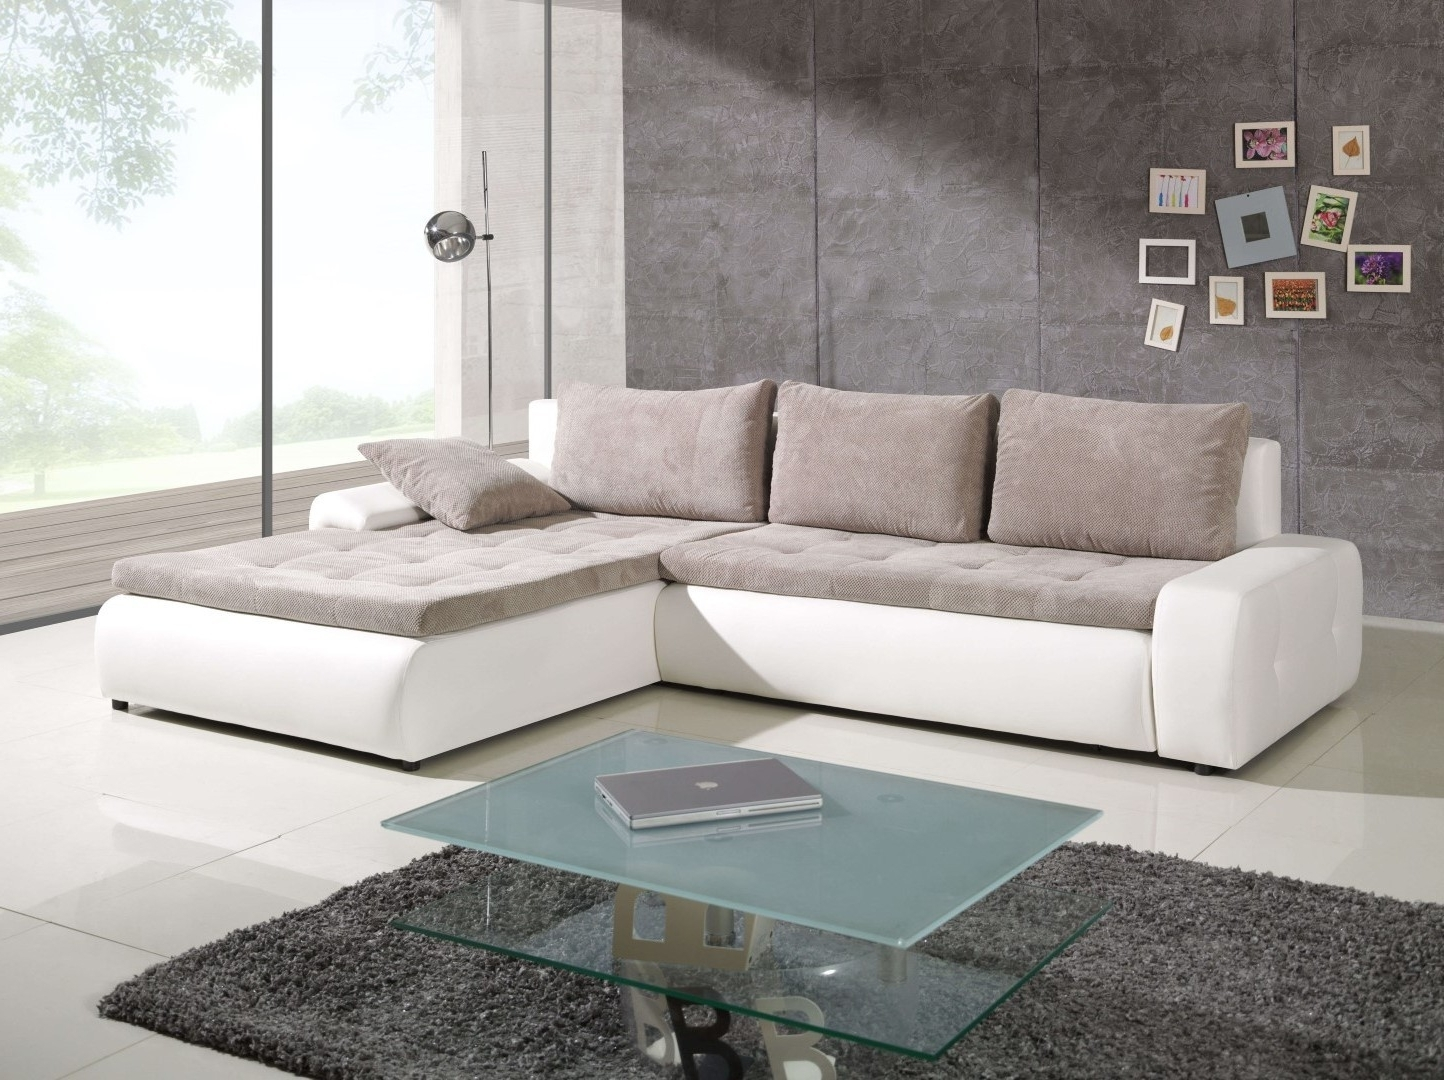 Sectional Sofas With Sleeper Inside Favorite Shop Galileo Sectional Sleeper Sofa With Storage Universal (View 12 of 20)